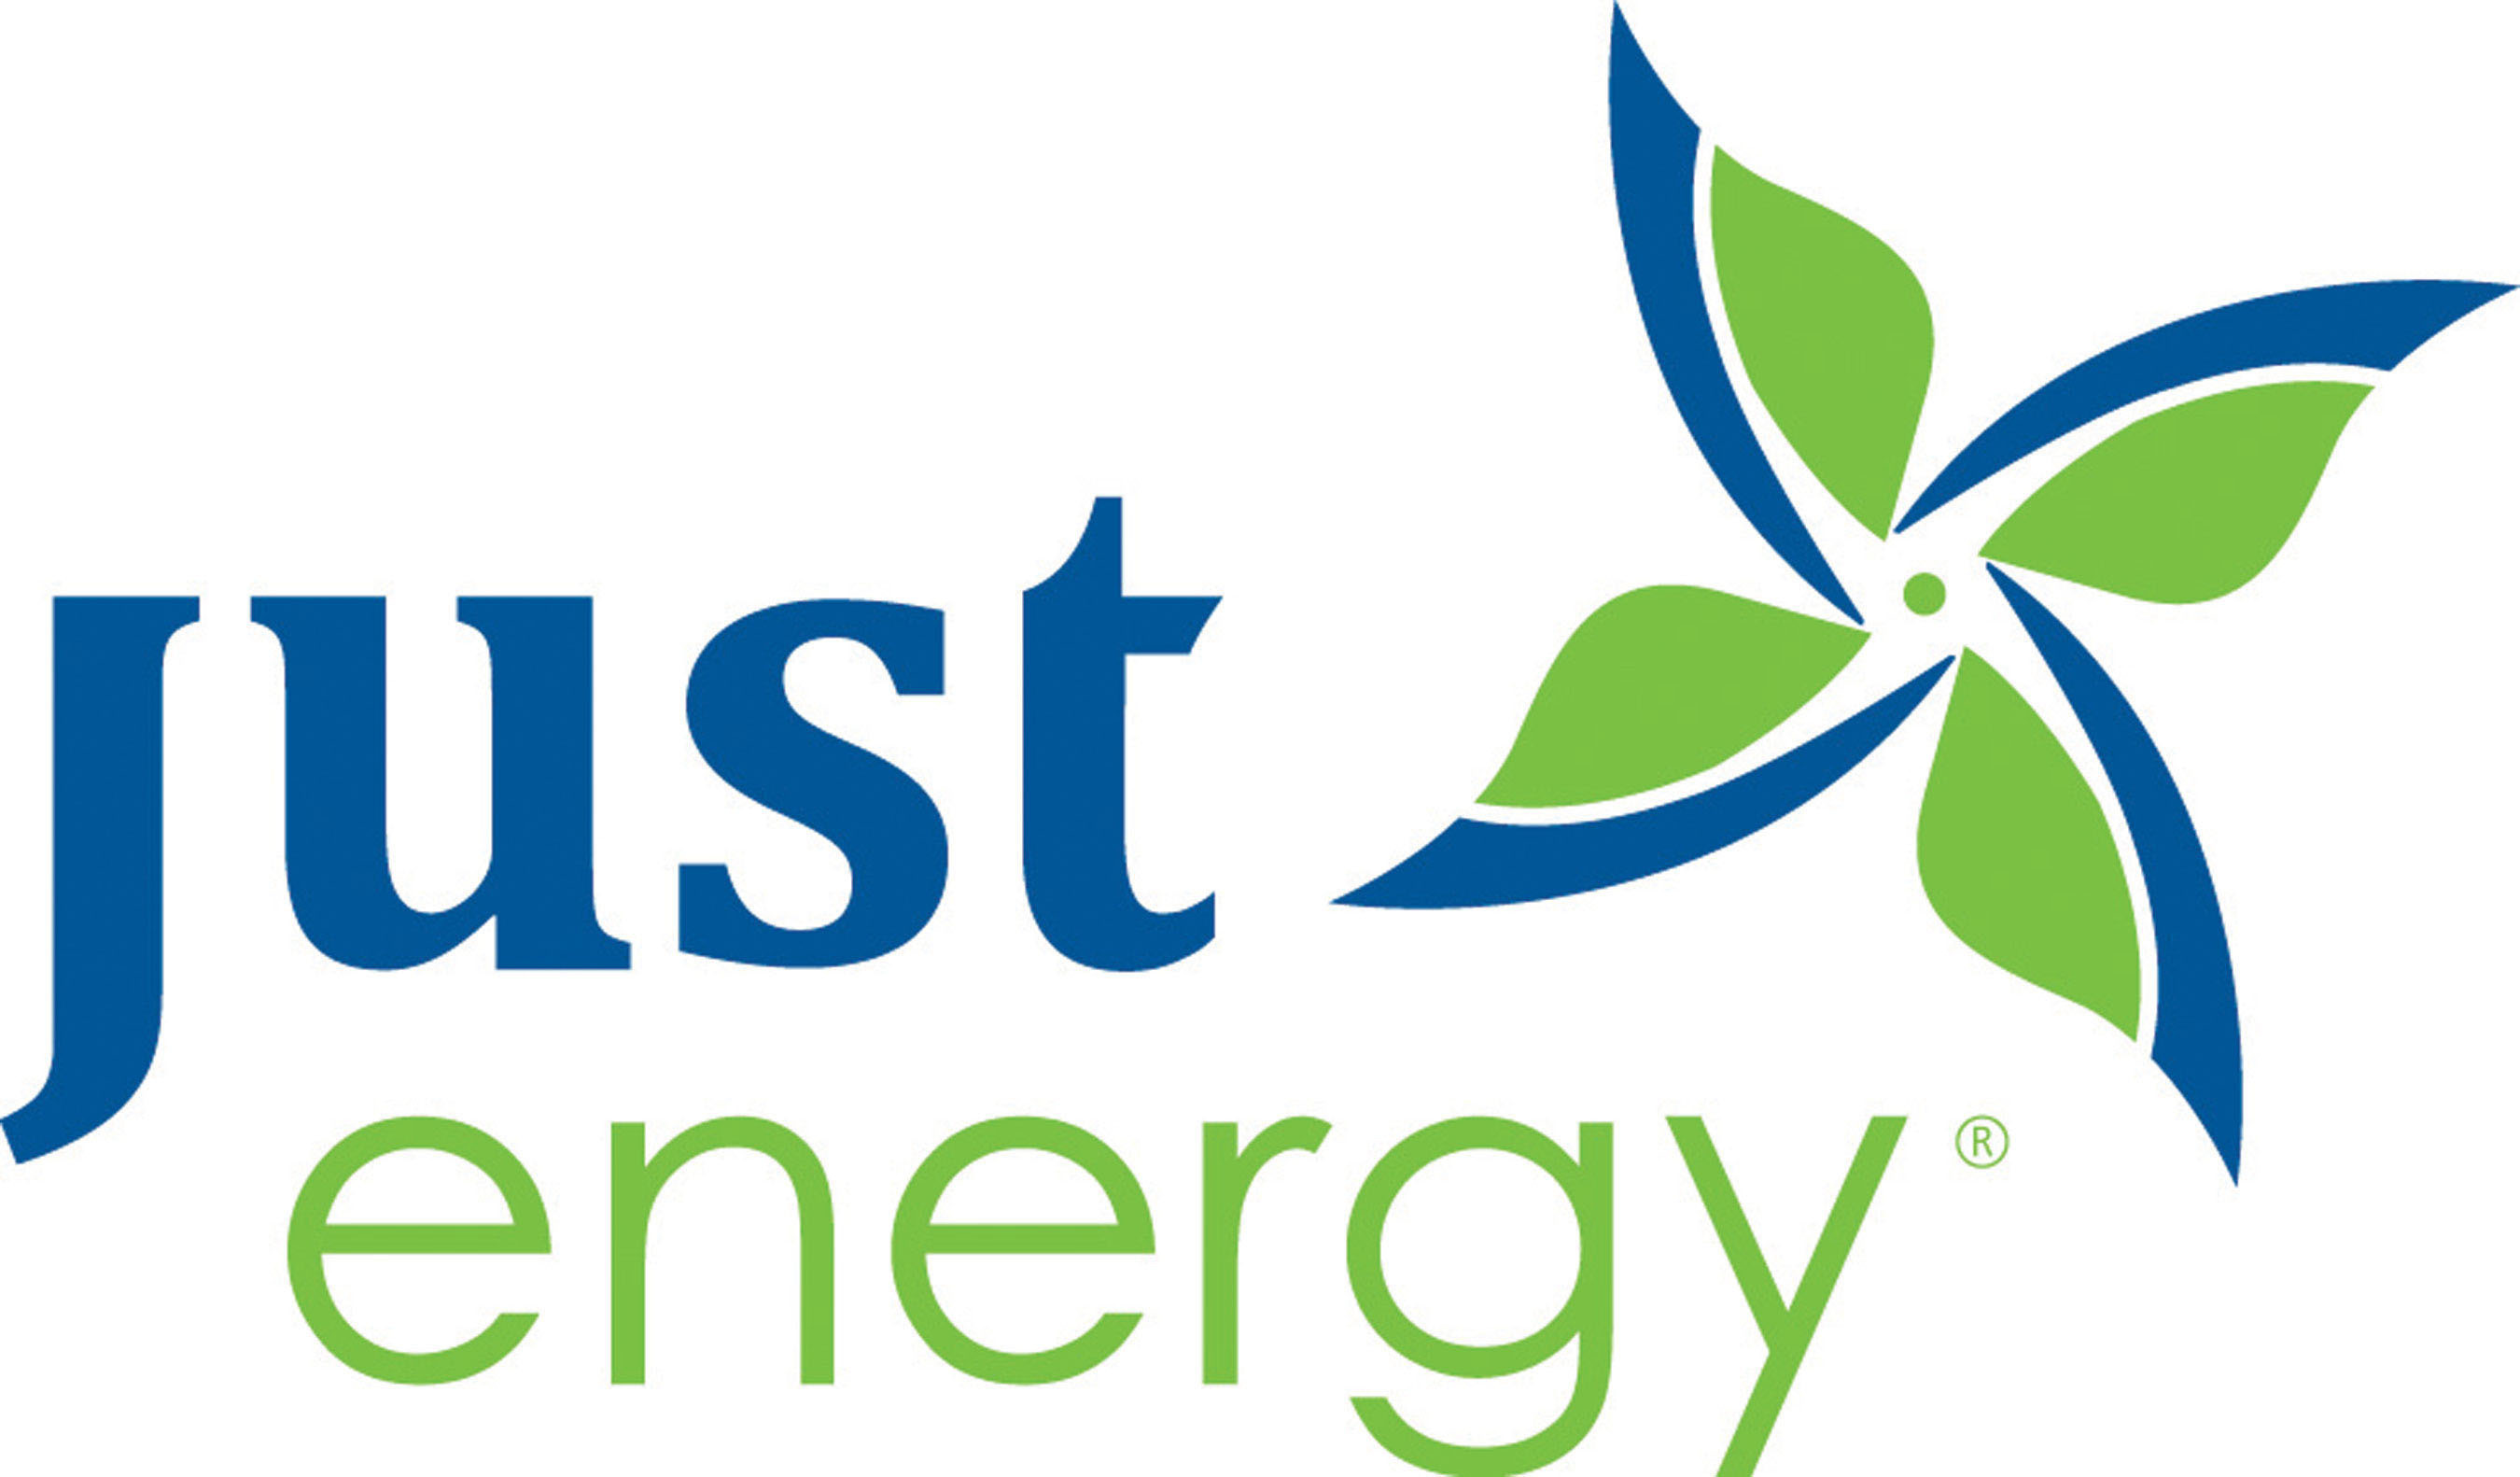 Just Energy is a leading North American natural gas and electricity retailer, and a market leader in green ...